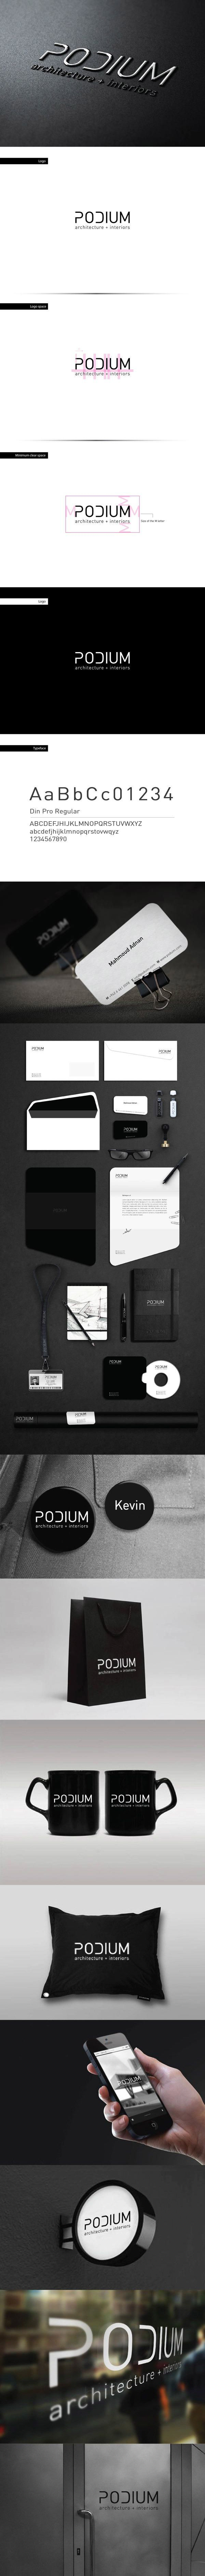 Podium by Mahmoud Alkhawaja, via Behance. If you like black and white #identity #packaging #branding PD